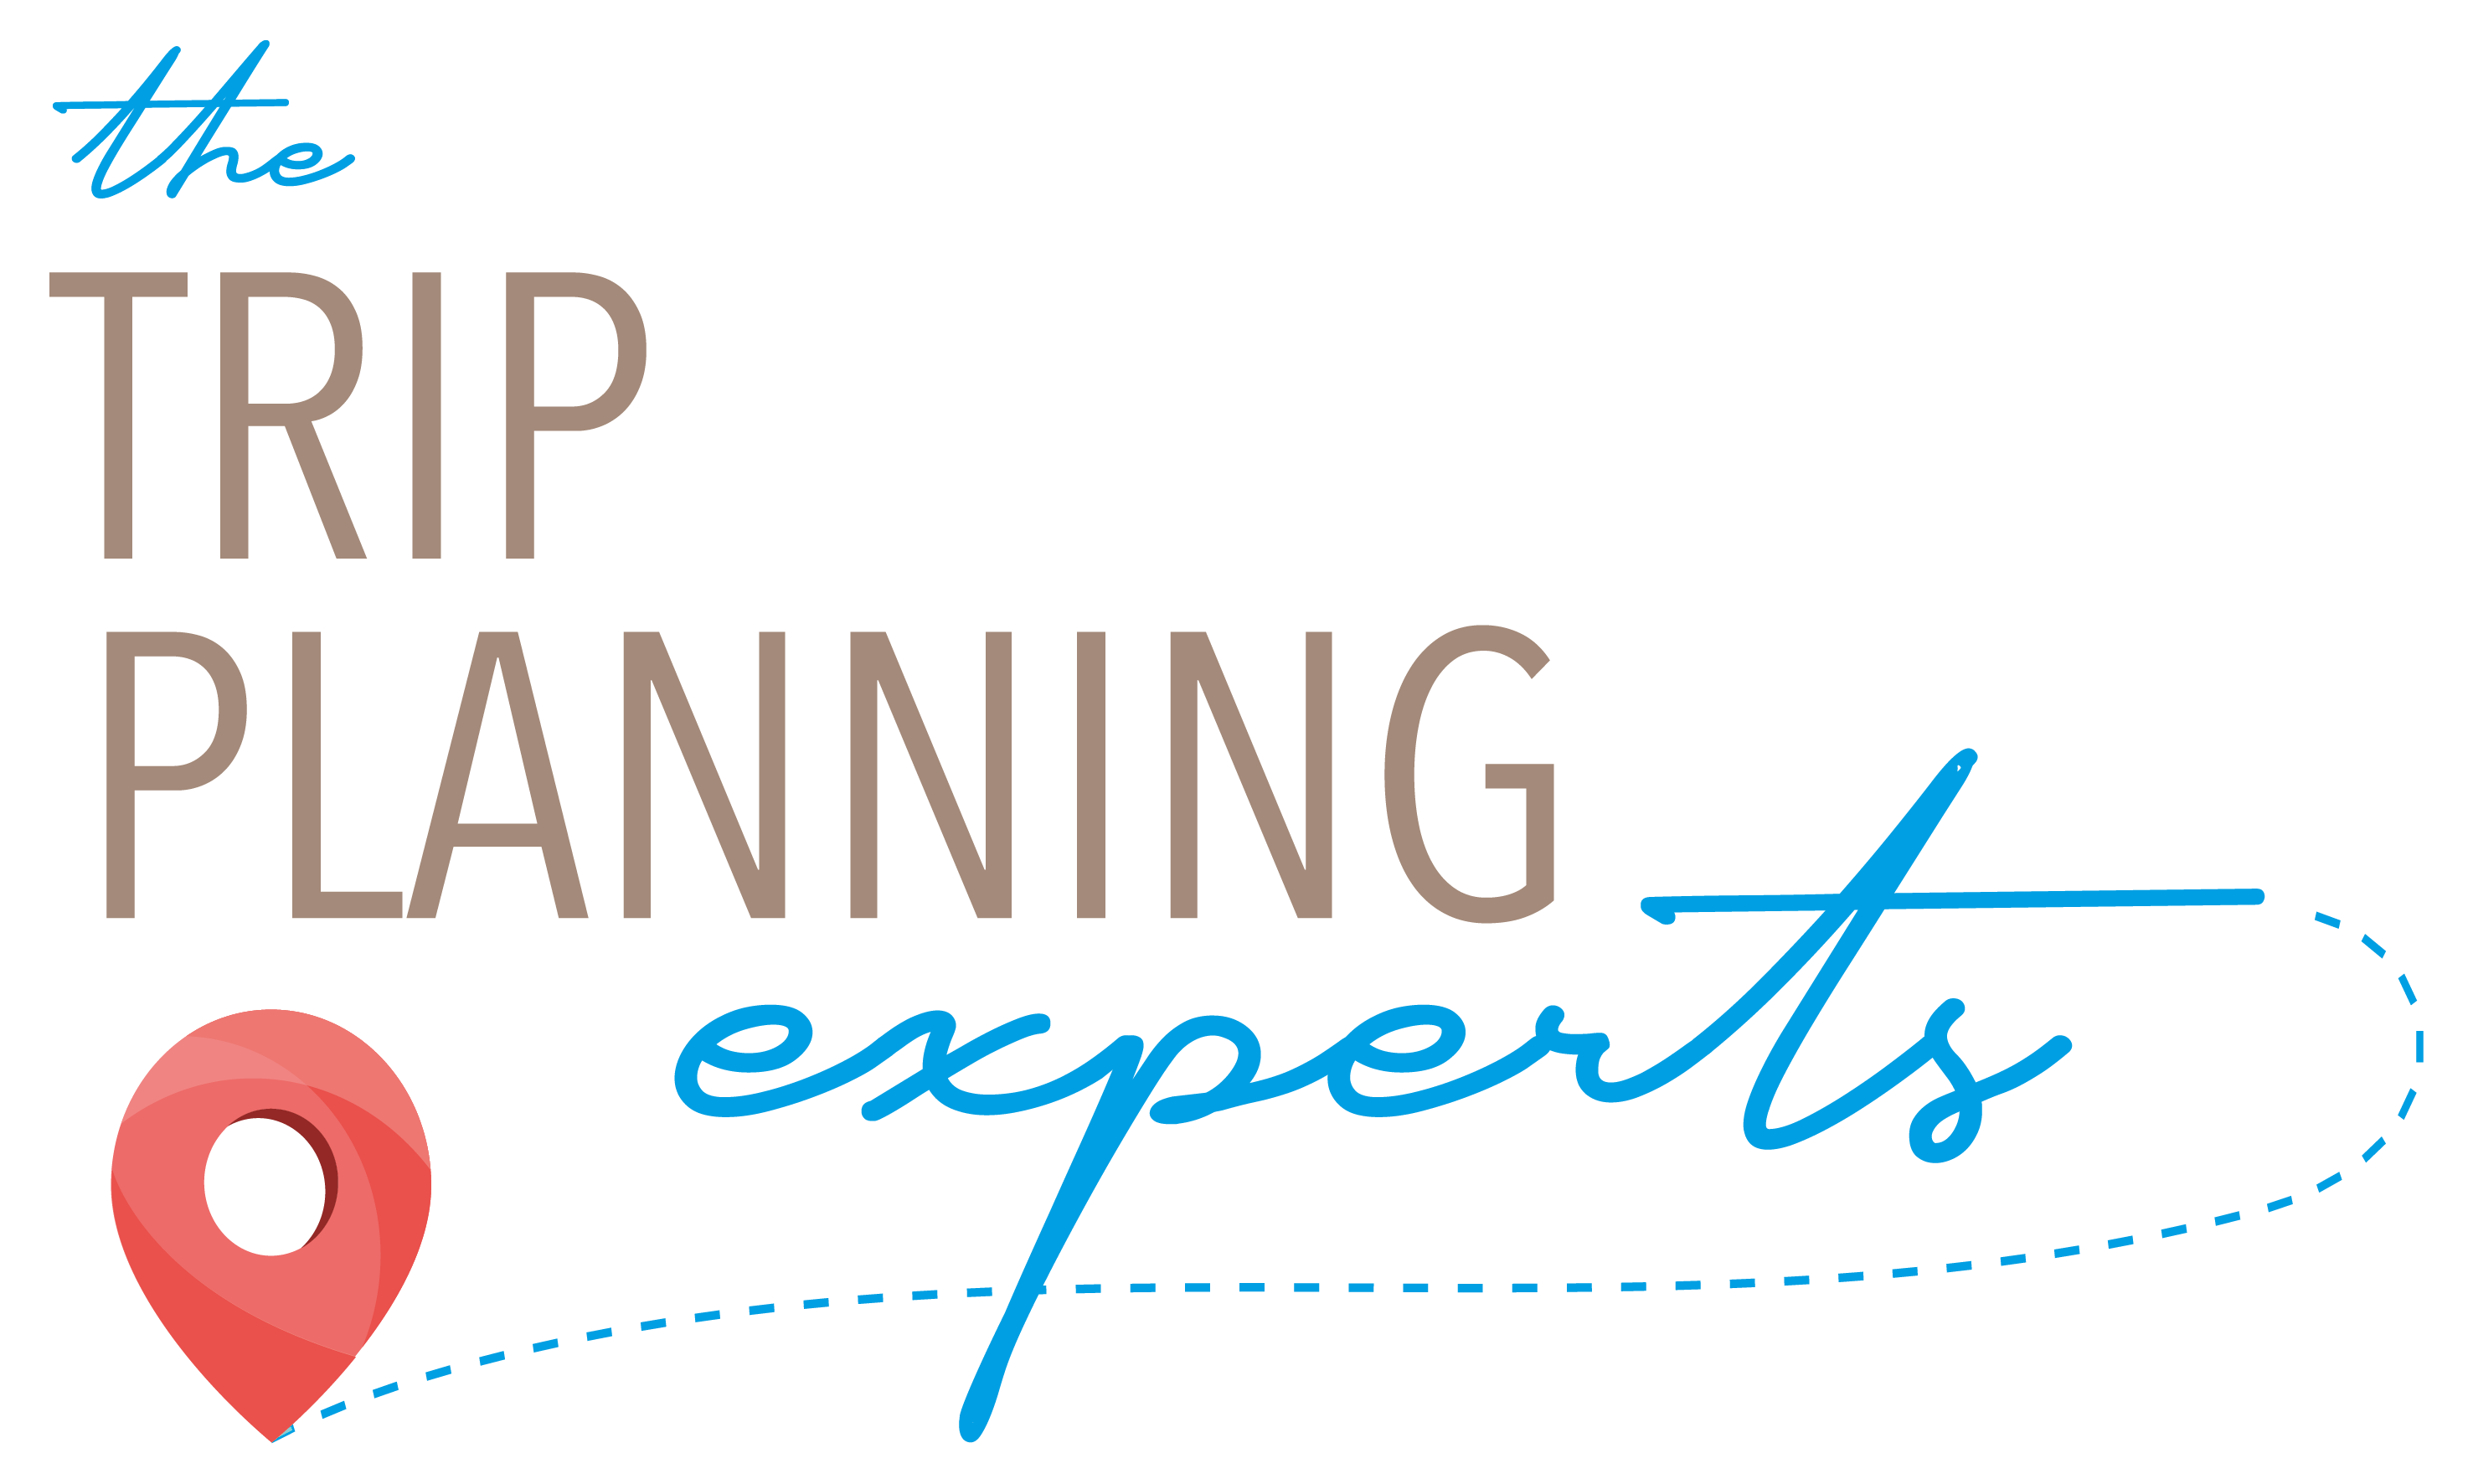 The Trip Planning Experts